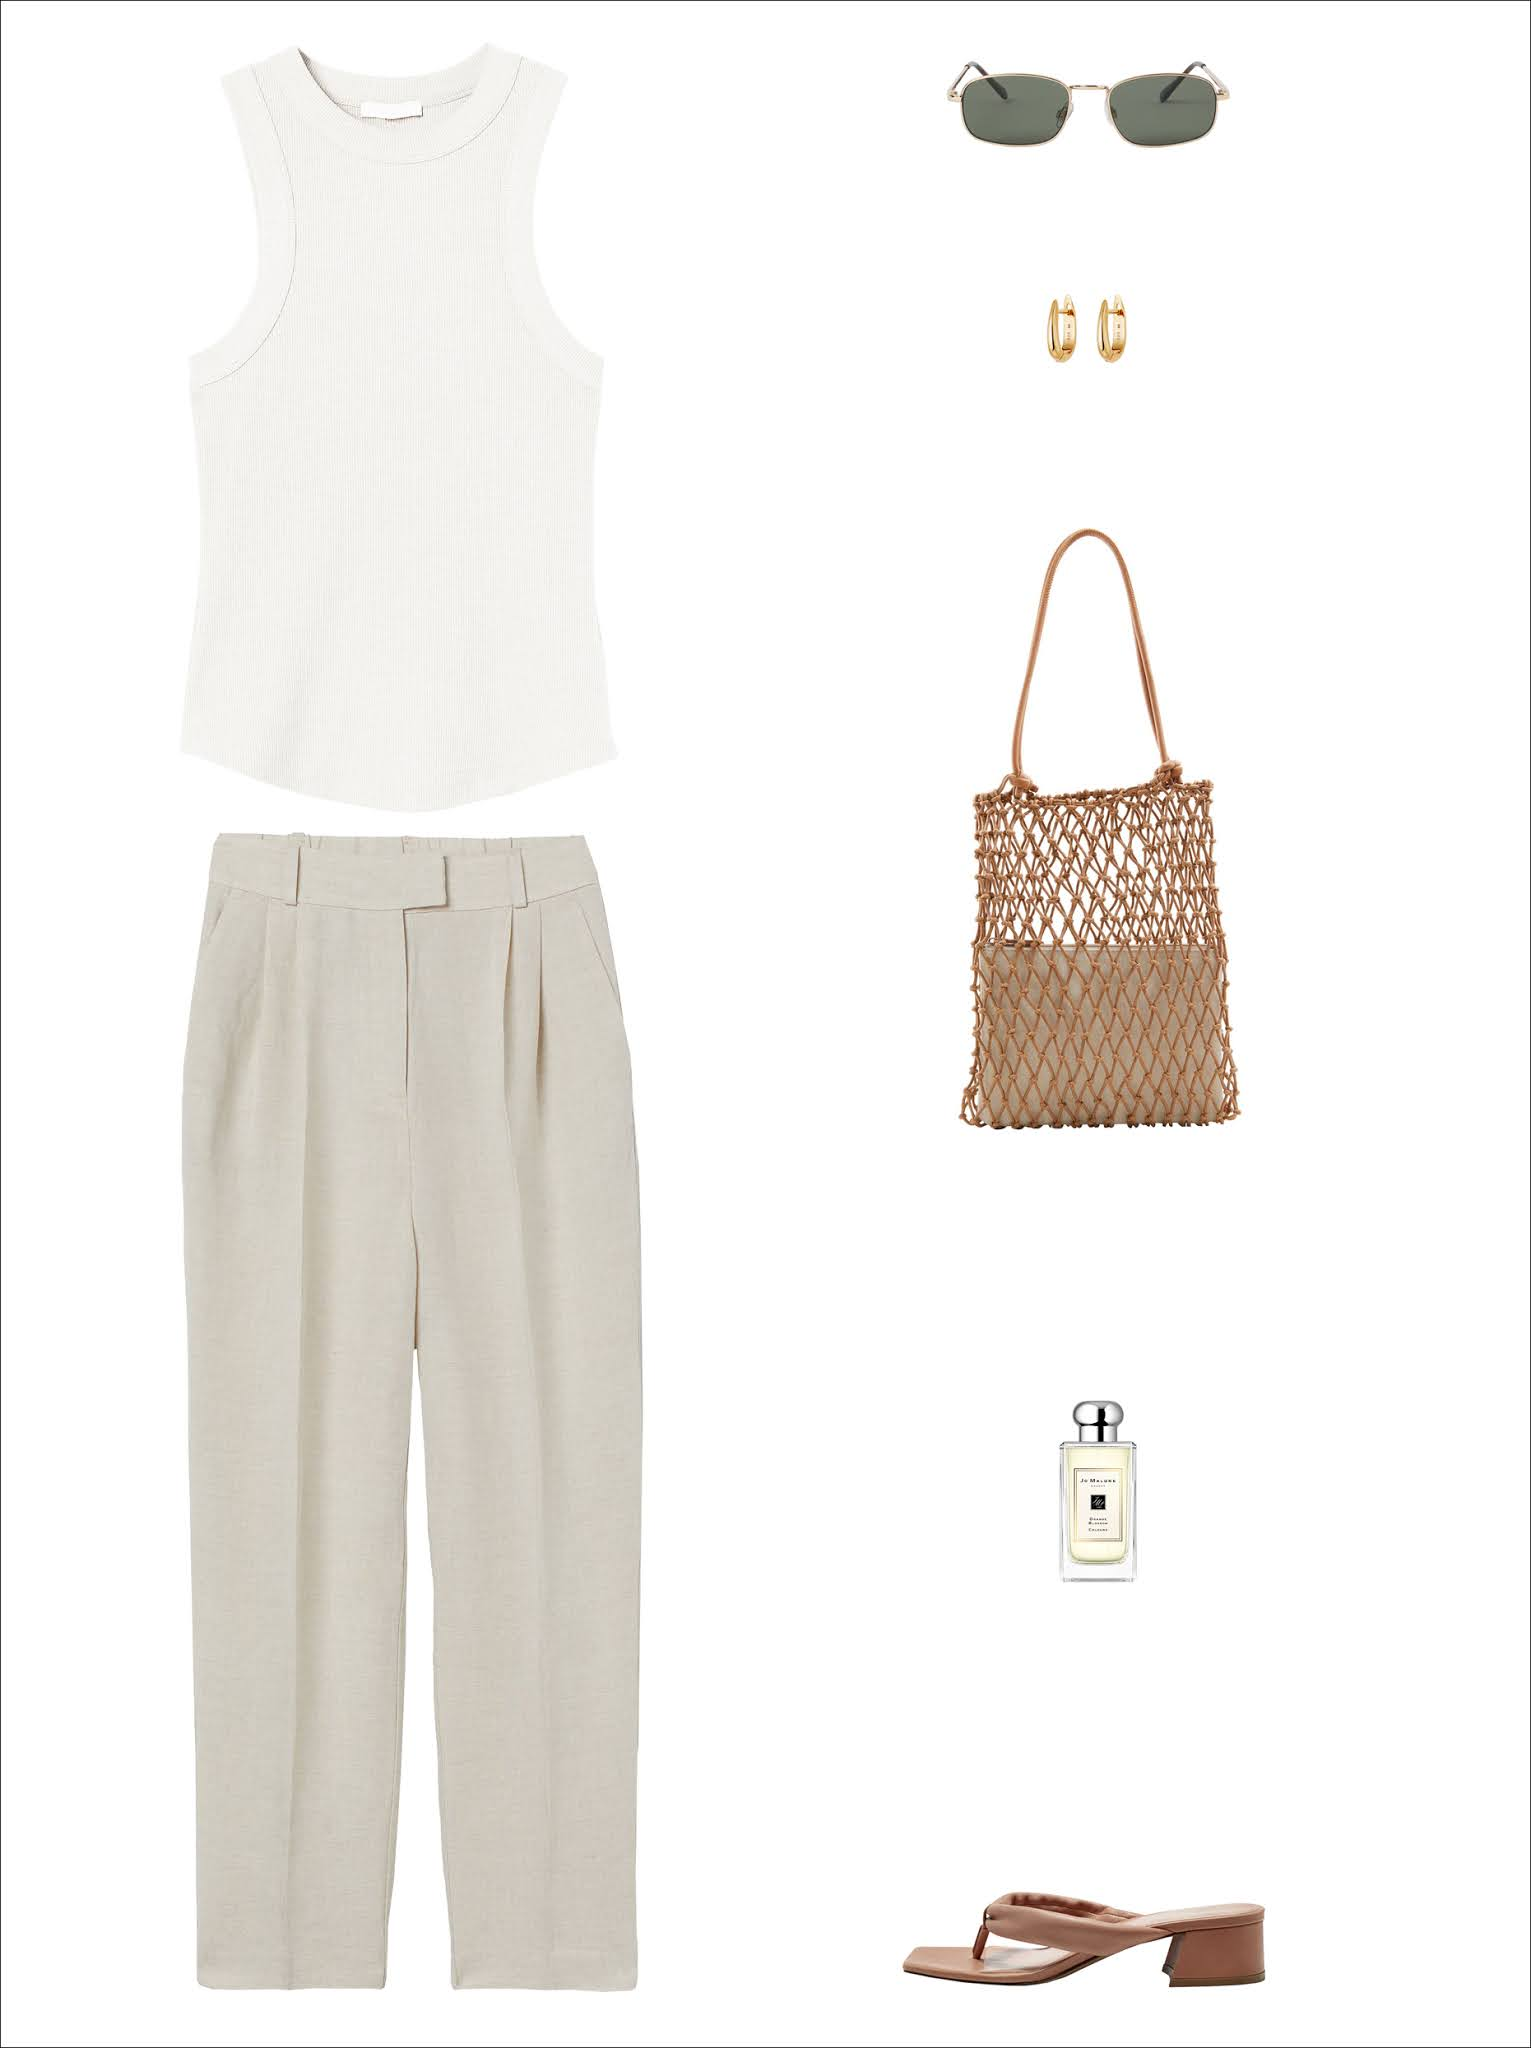 Under $100 Summer Outfit Idea — Neutral Look With Elevated Ribbed White Tank Top, Metal-Rim Sunglasses, Gold Hoop Earrings, Net Tote Bag, Beige Linen Pants, Jo Malone Orange Blossom, Tan Heeled Flip Flop Sandals